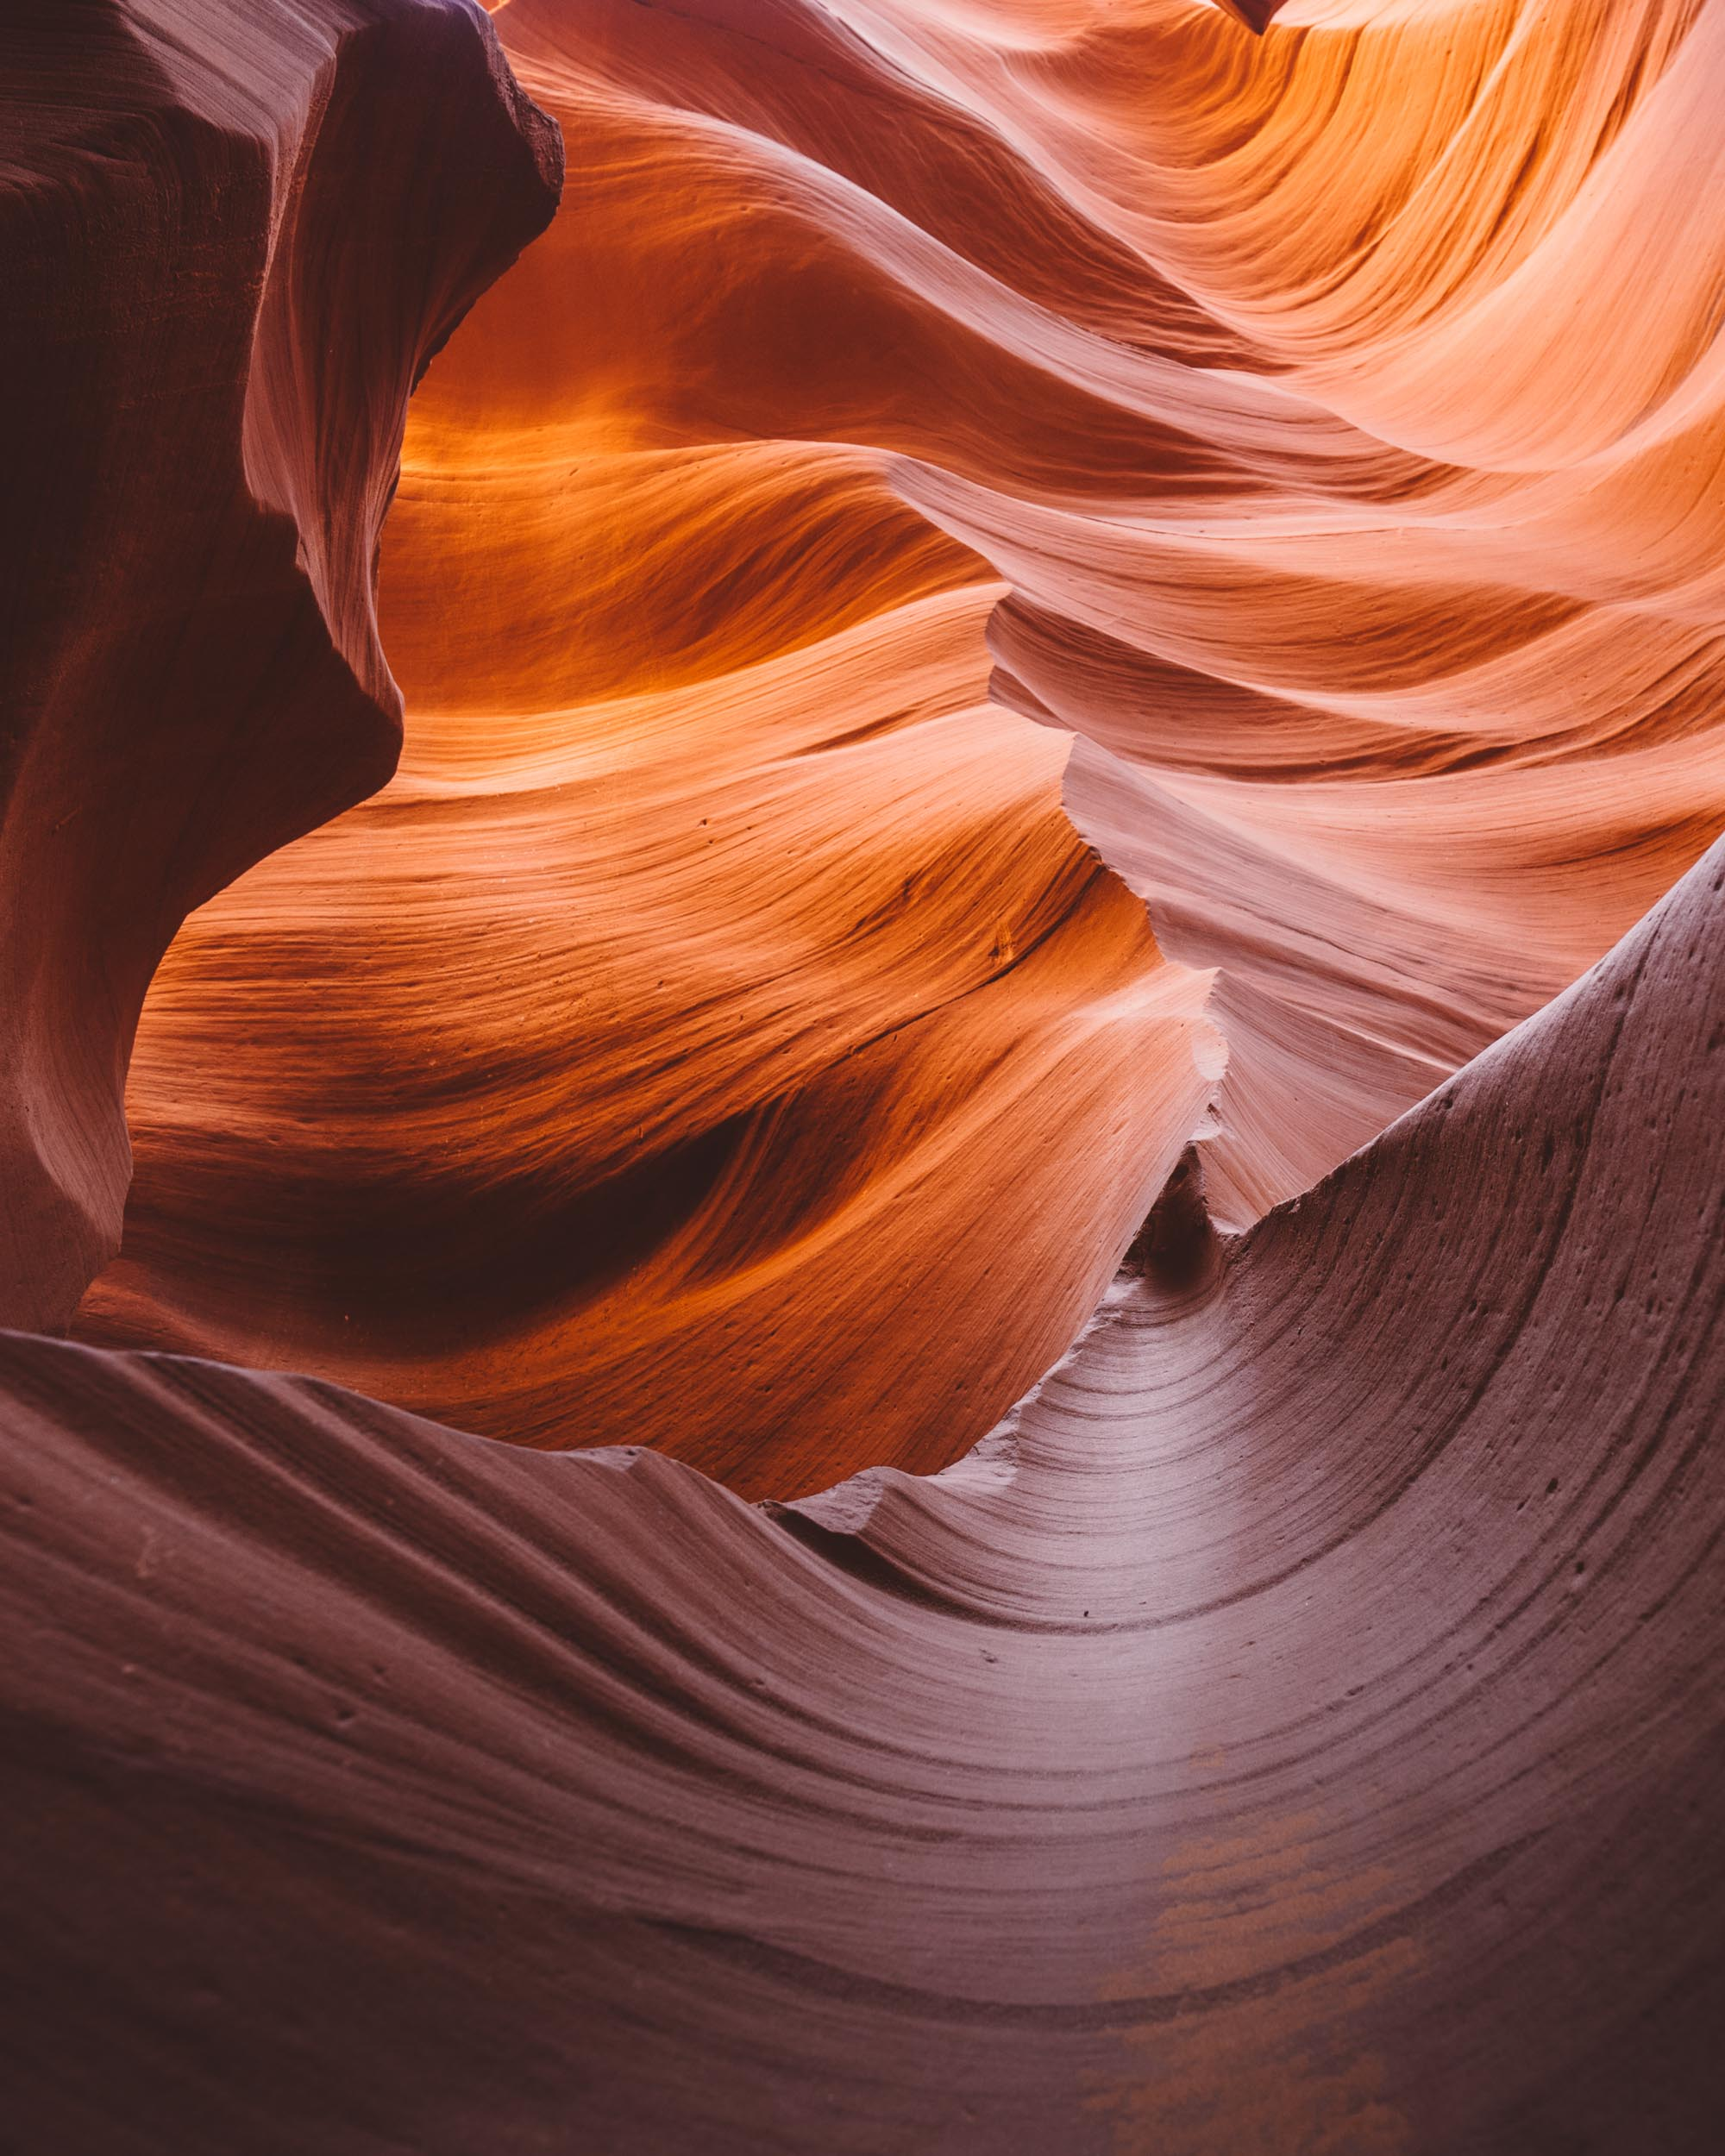 Lower-Antelope-Canyon-7304432.jpg